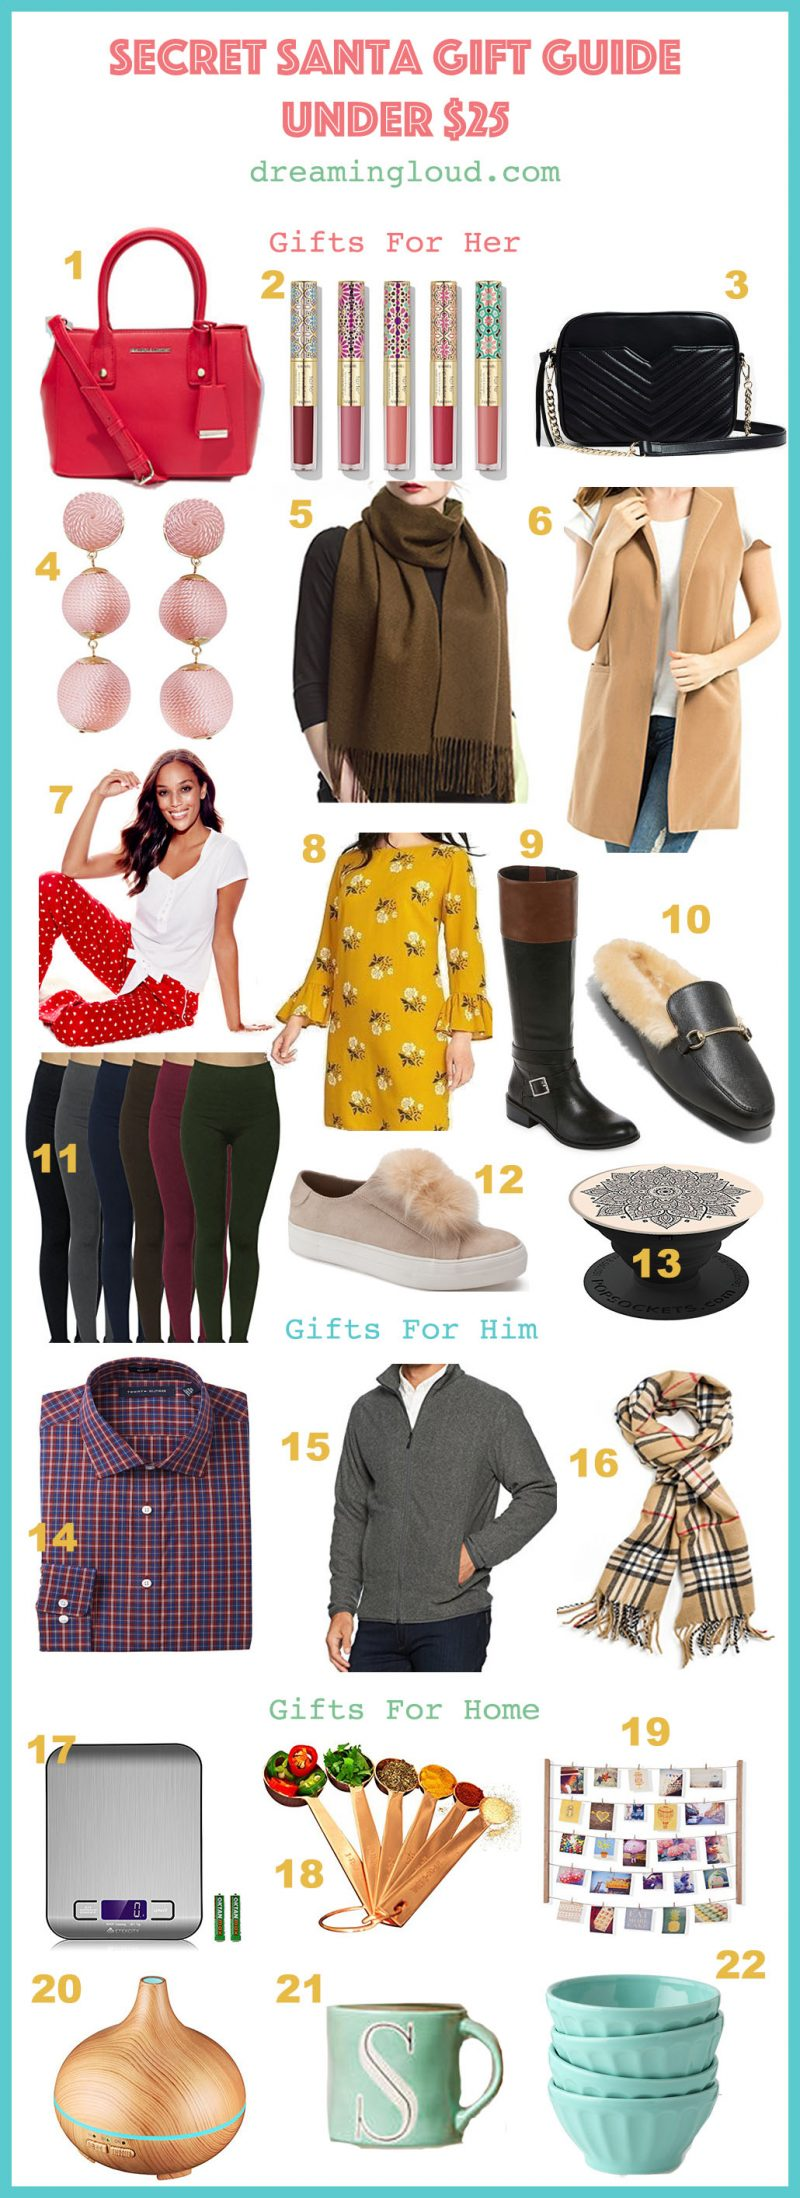 Life Style Blog Dreaming Loud Sharing Secret Santa Gift Guide Or Ideas Under 25 2017